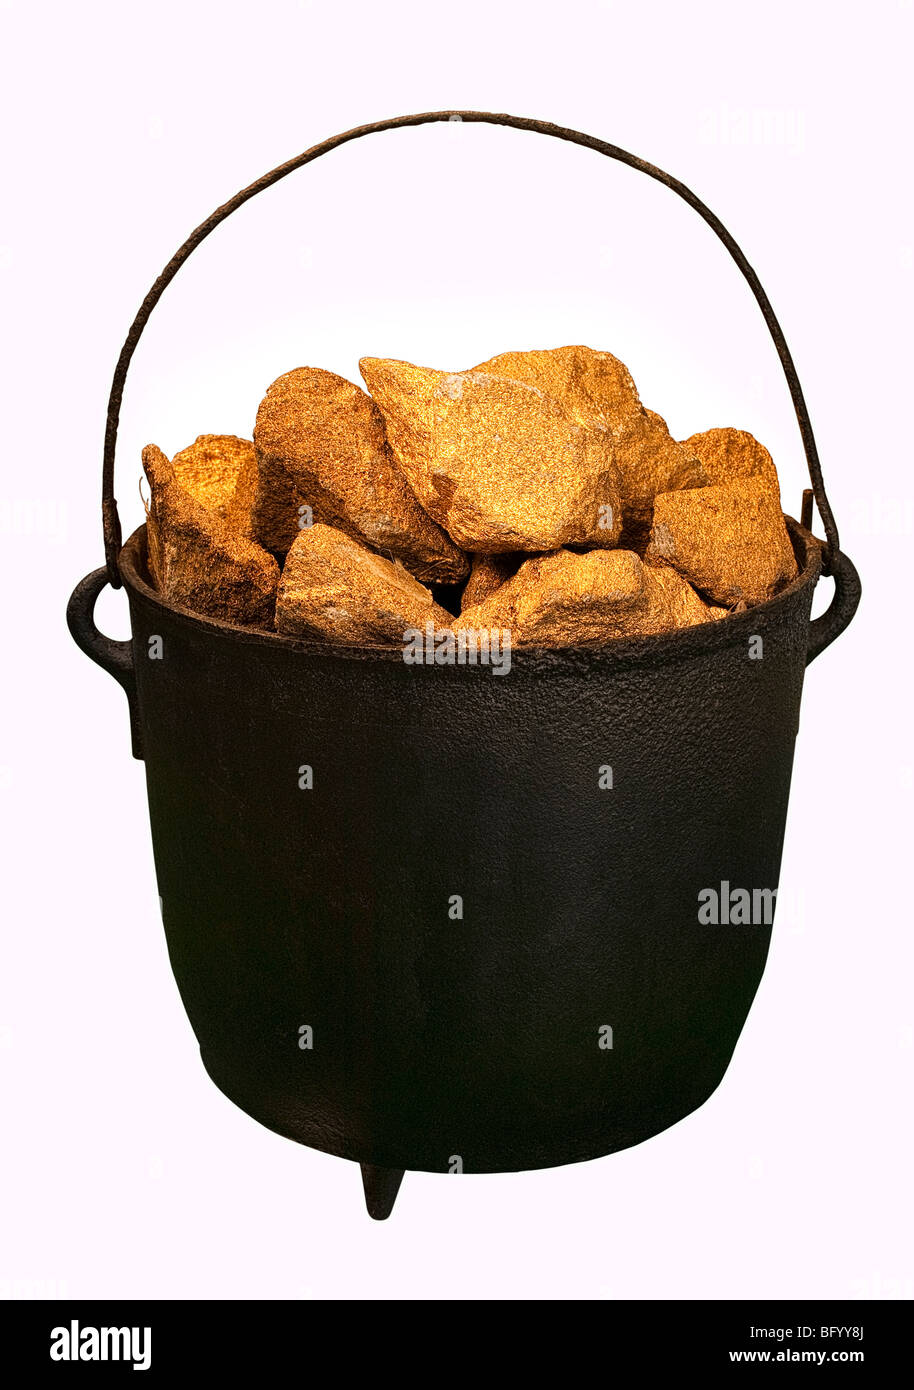 A caldron full of gold nuggets against a white background - Stock Image